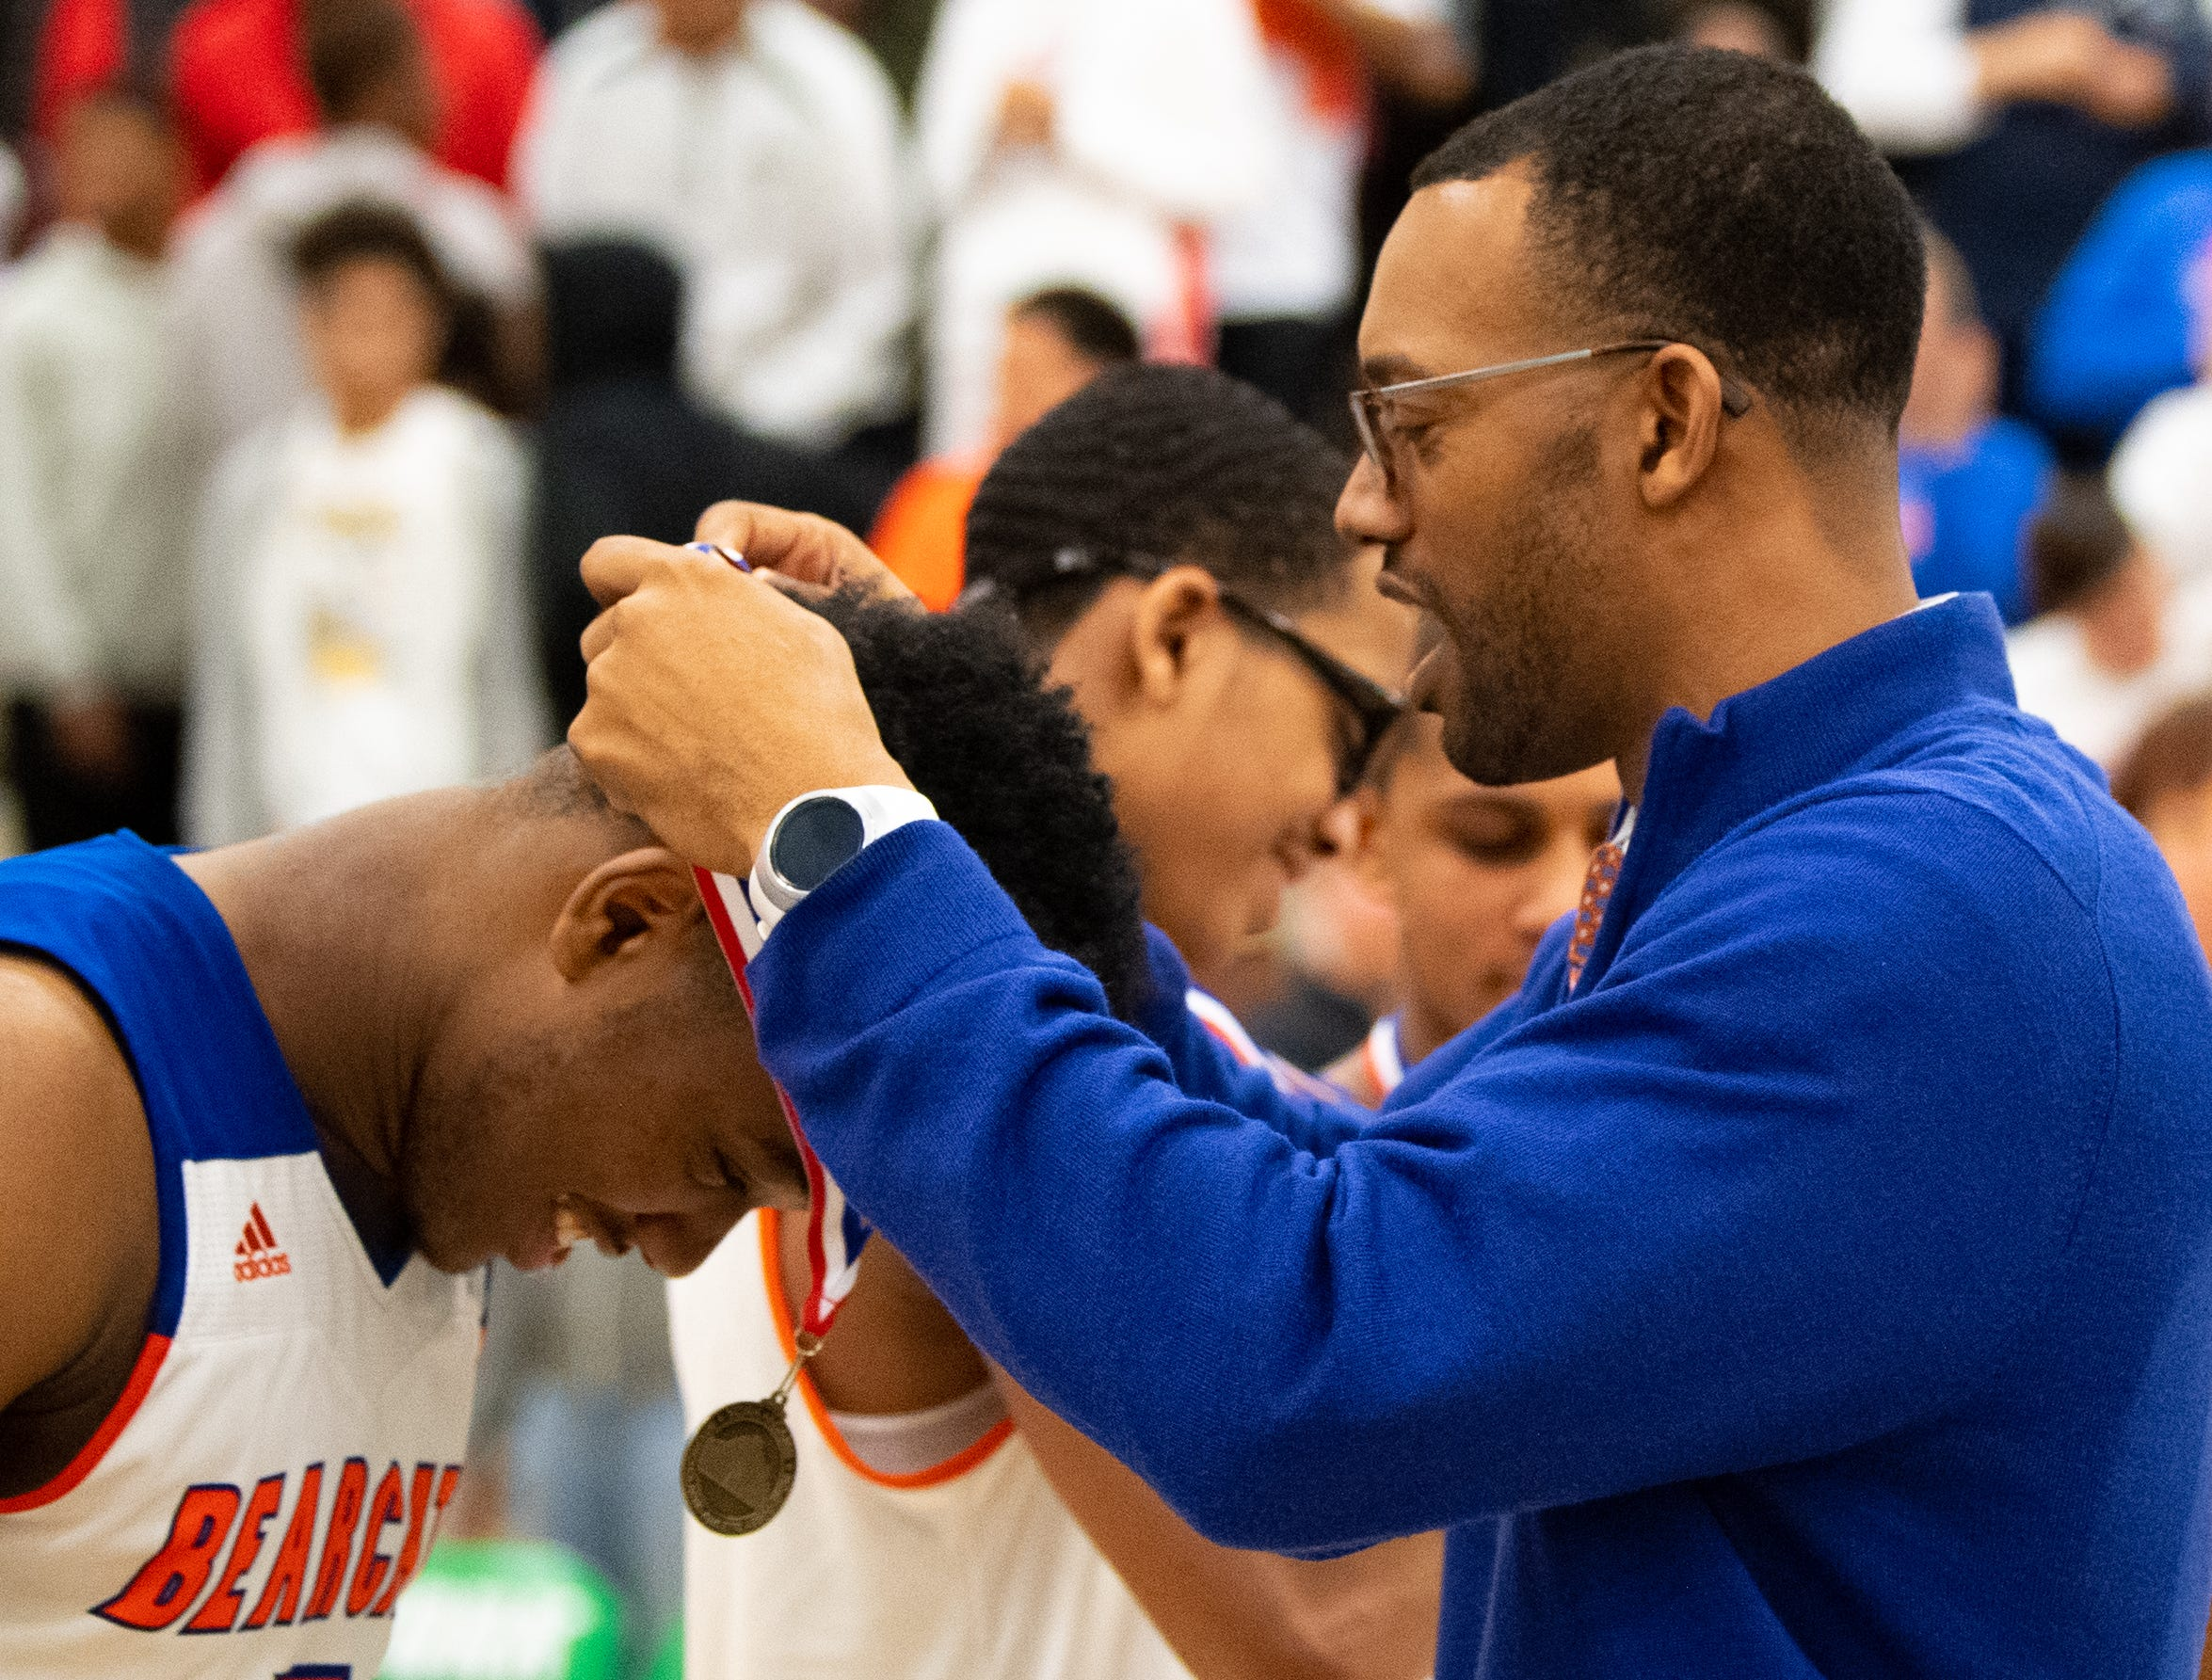 York High head coach Clovis Gallon Sr. presents medals to his team after the YAIAA Division I title game between York High and New Oxford, Friday, February 15, 2019 at York College. The Bearcats defeated the Colonials 54 to 50.